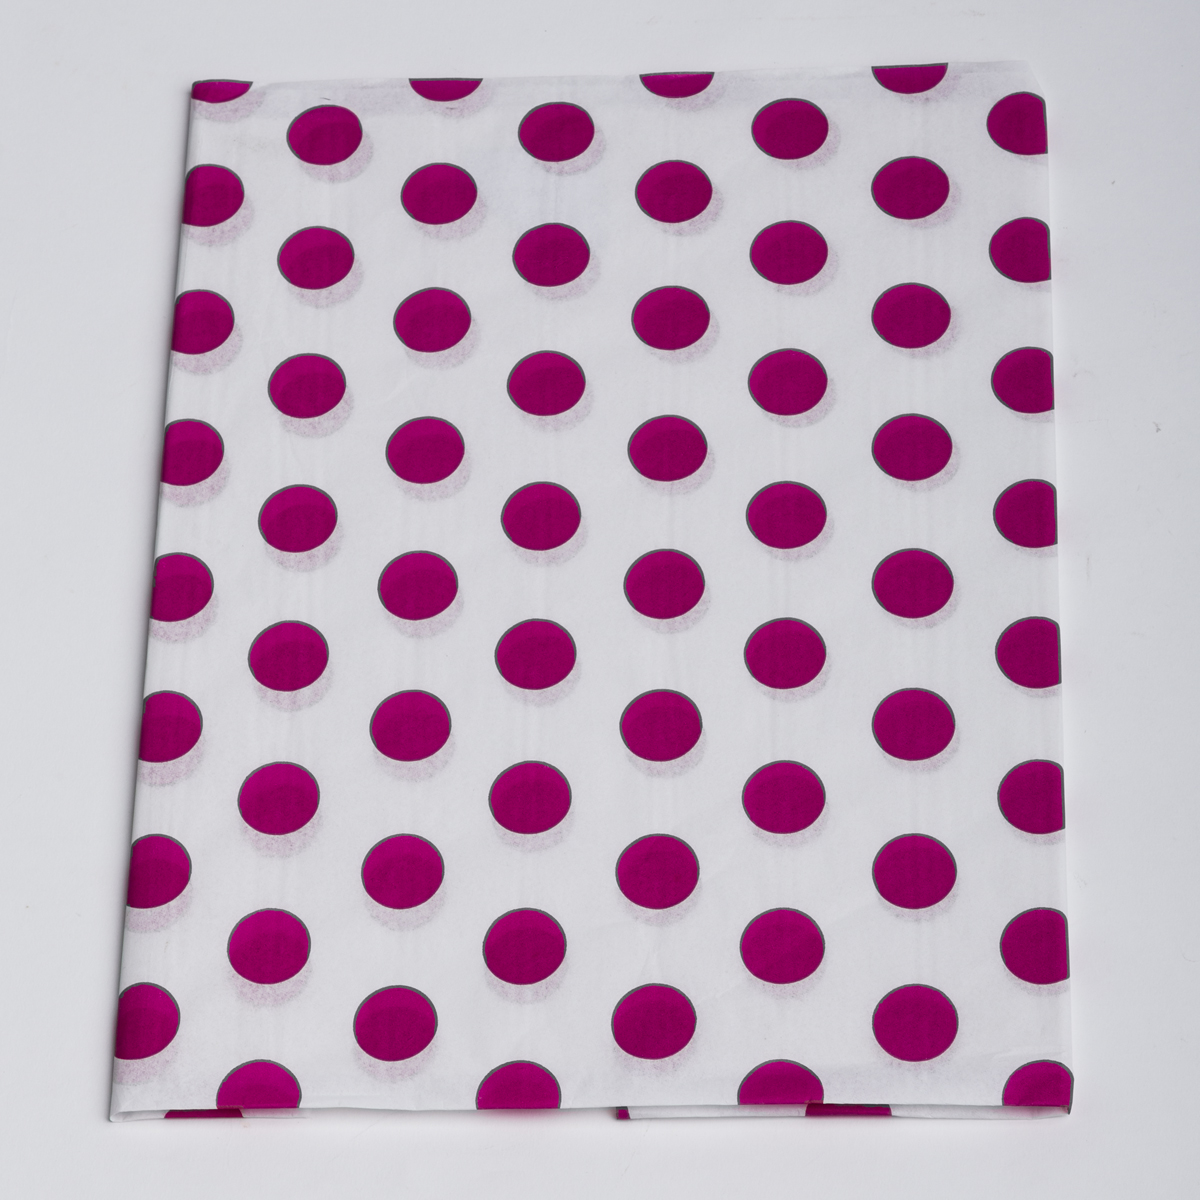 PINK DOT TISSUE PAPER